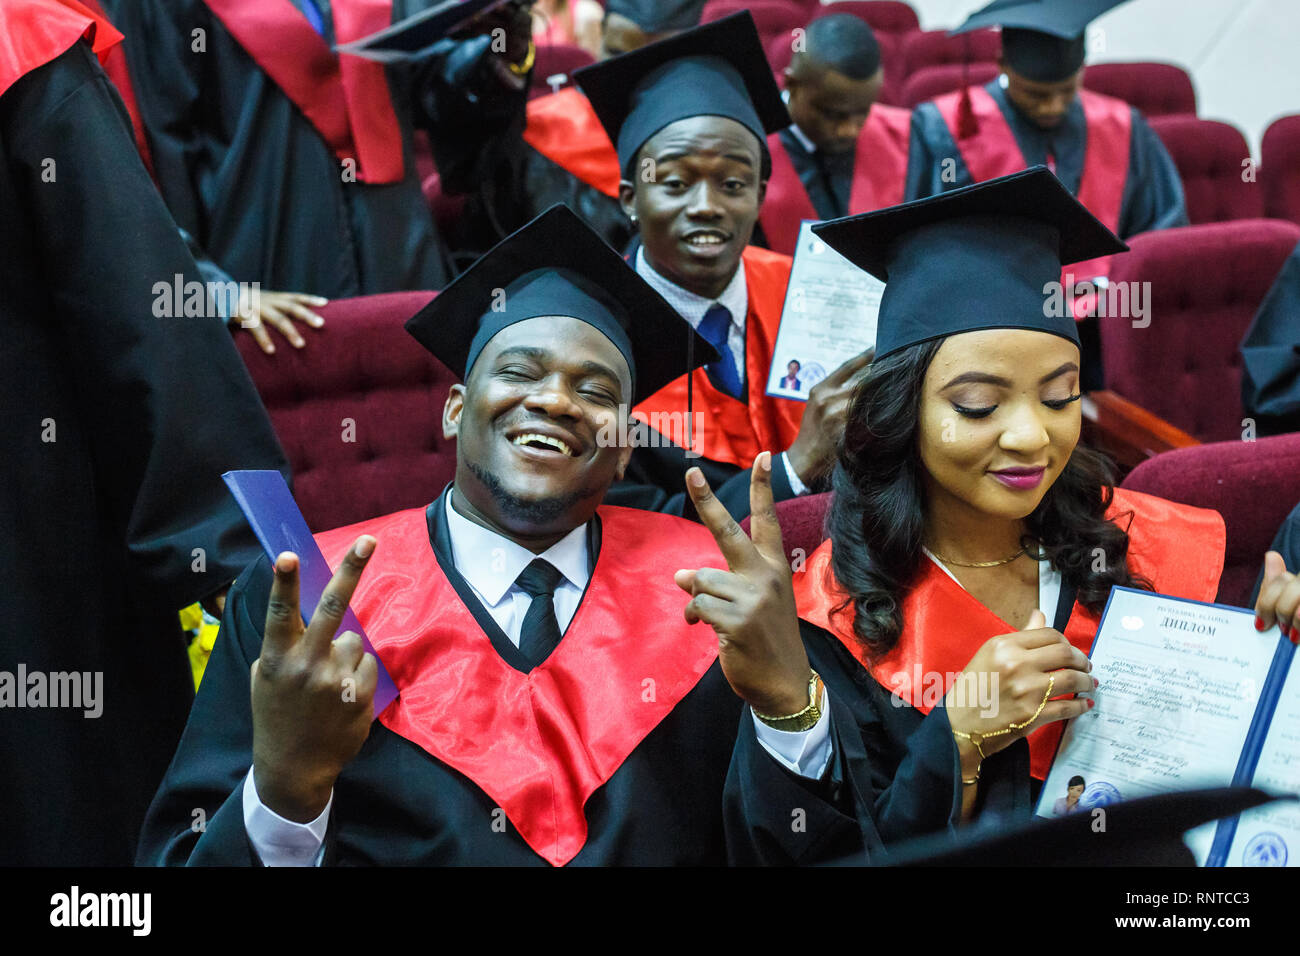 GRODNO, BELARUS - JUNE, 2018: Foreign african medical students in square academic graduation caps and black raincoats during commencement with diploms - Stock Image